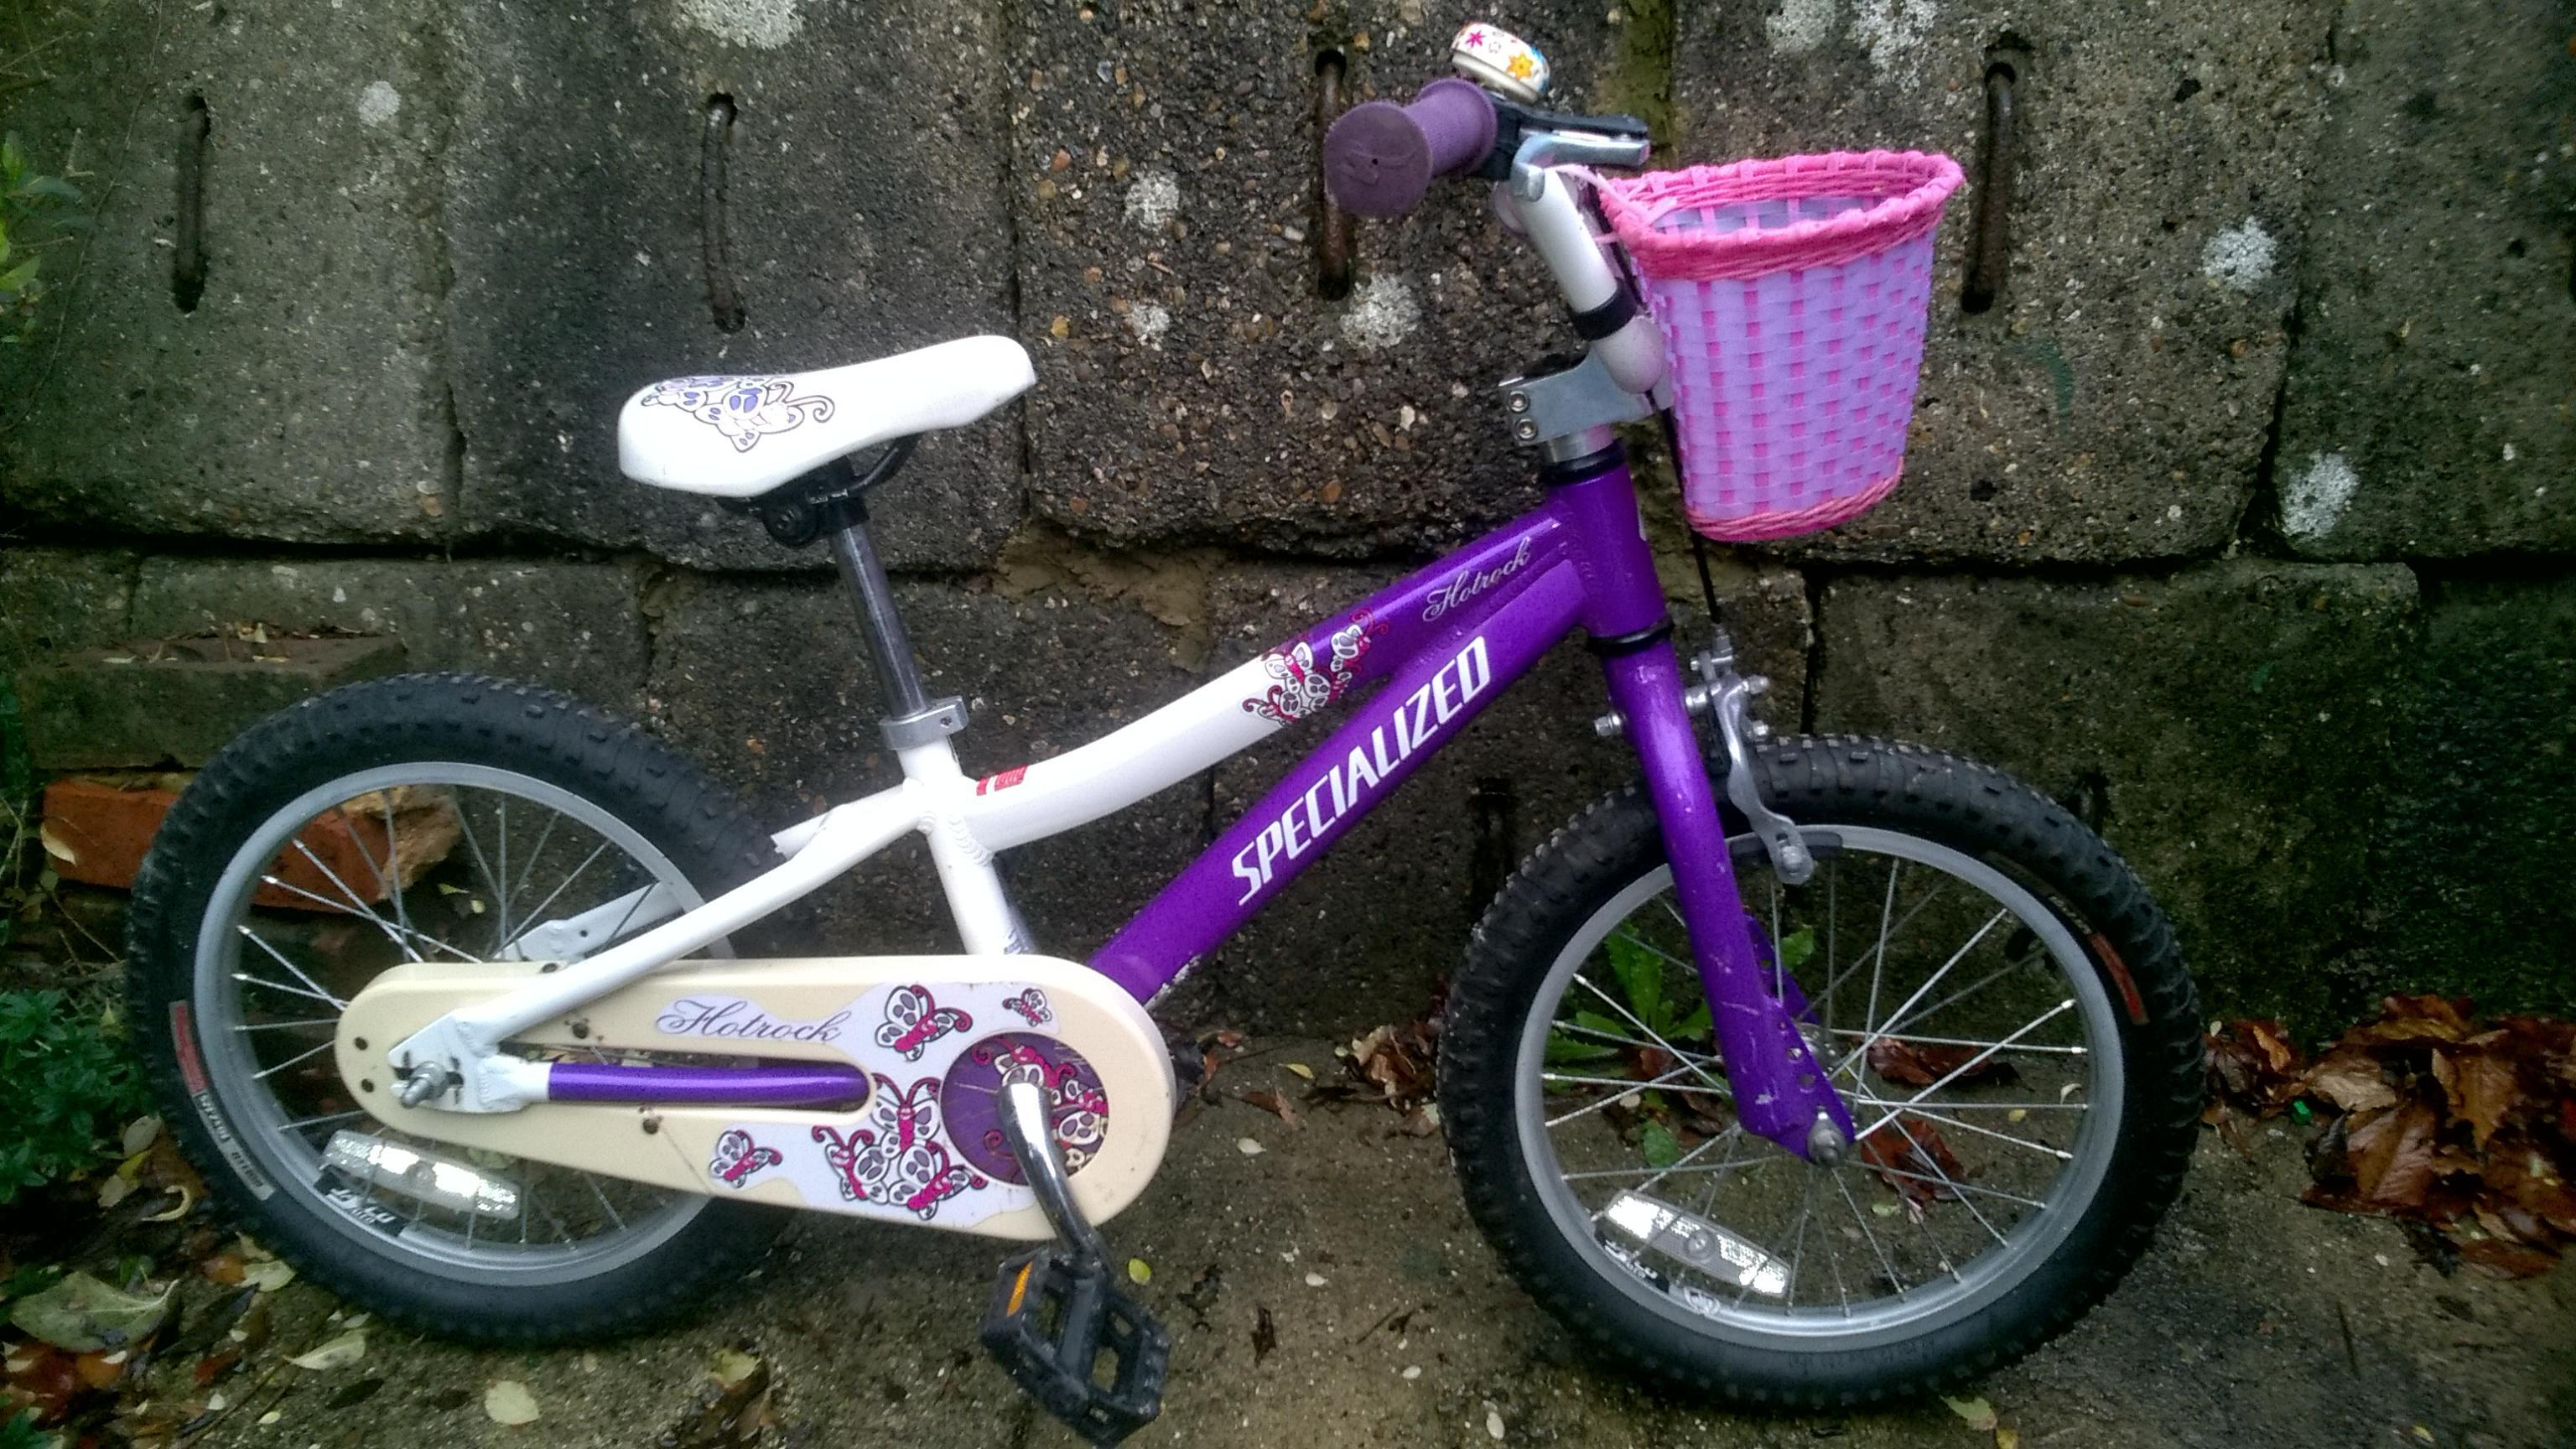 Girls Bike for sale for 3 to 7 year old.